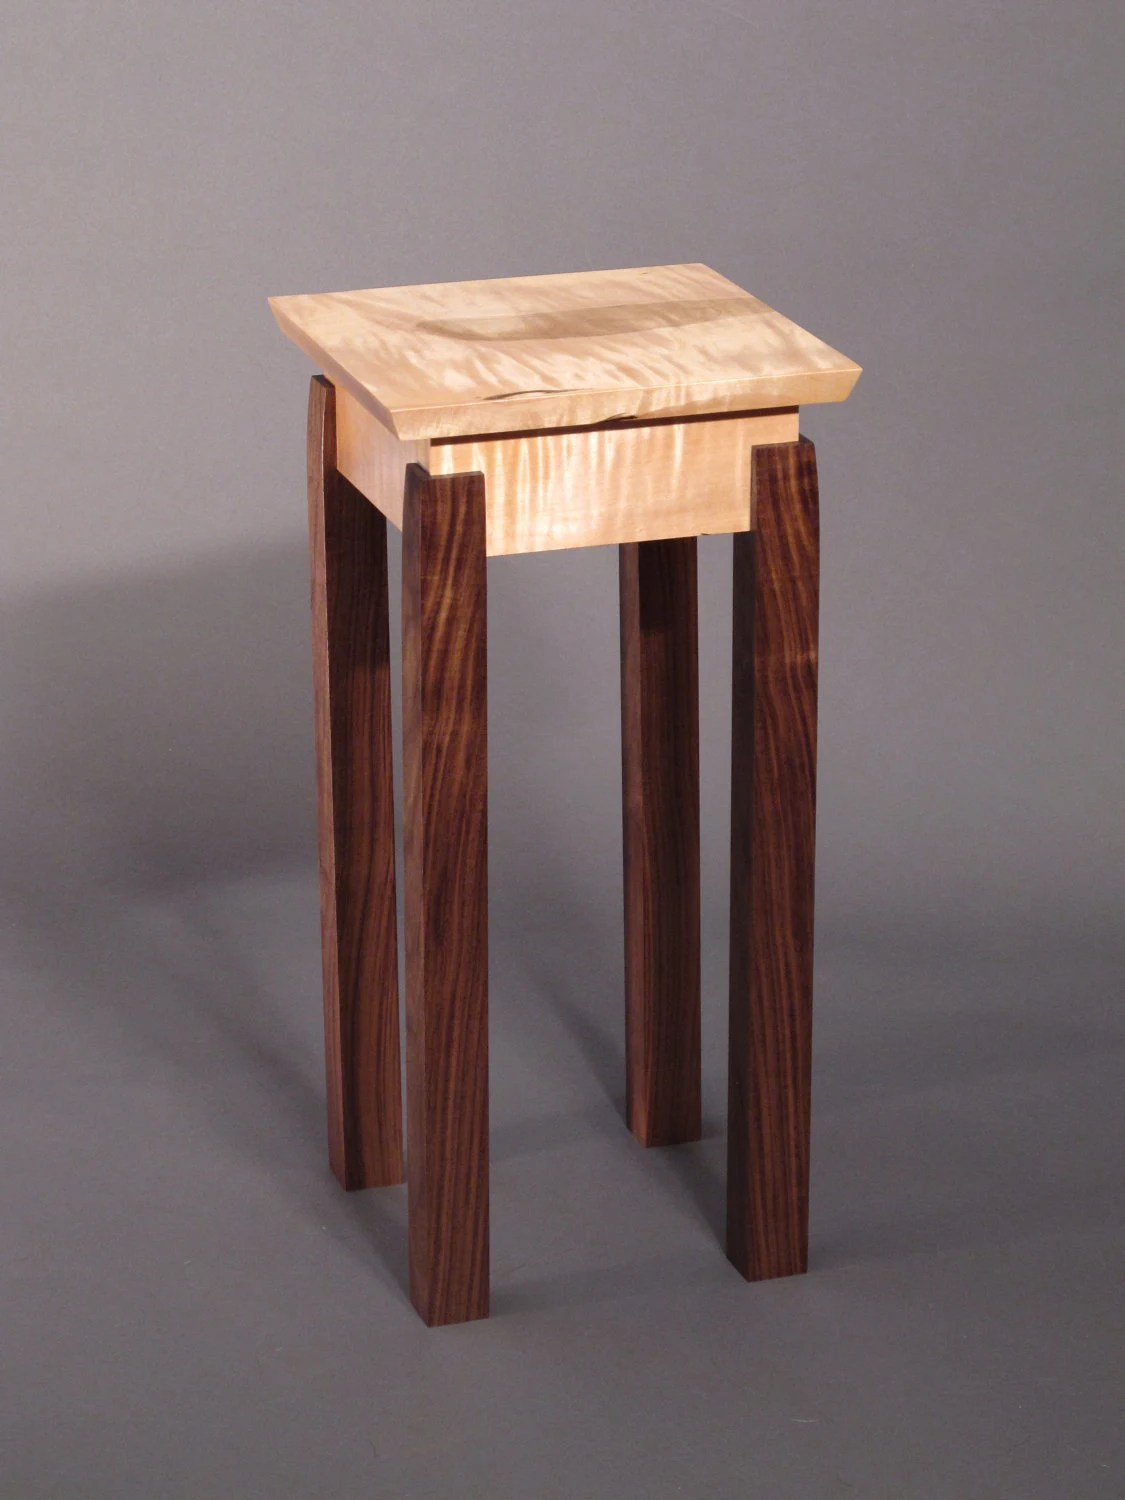 Unusual Accent Tables Accent Table Small End Table Handmade Custom Wood Furniture